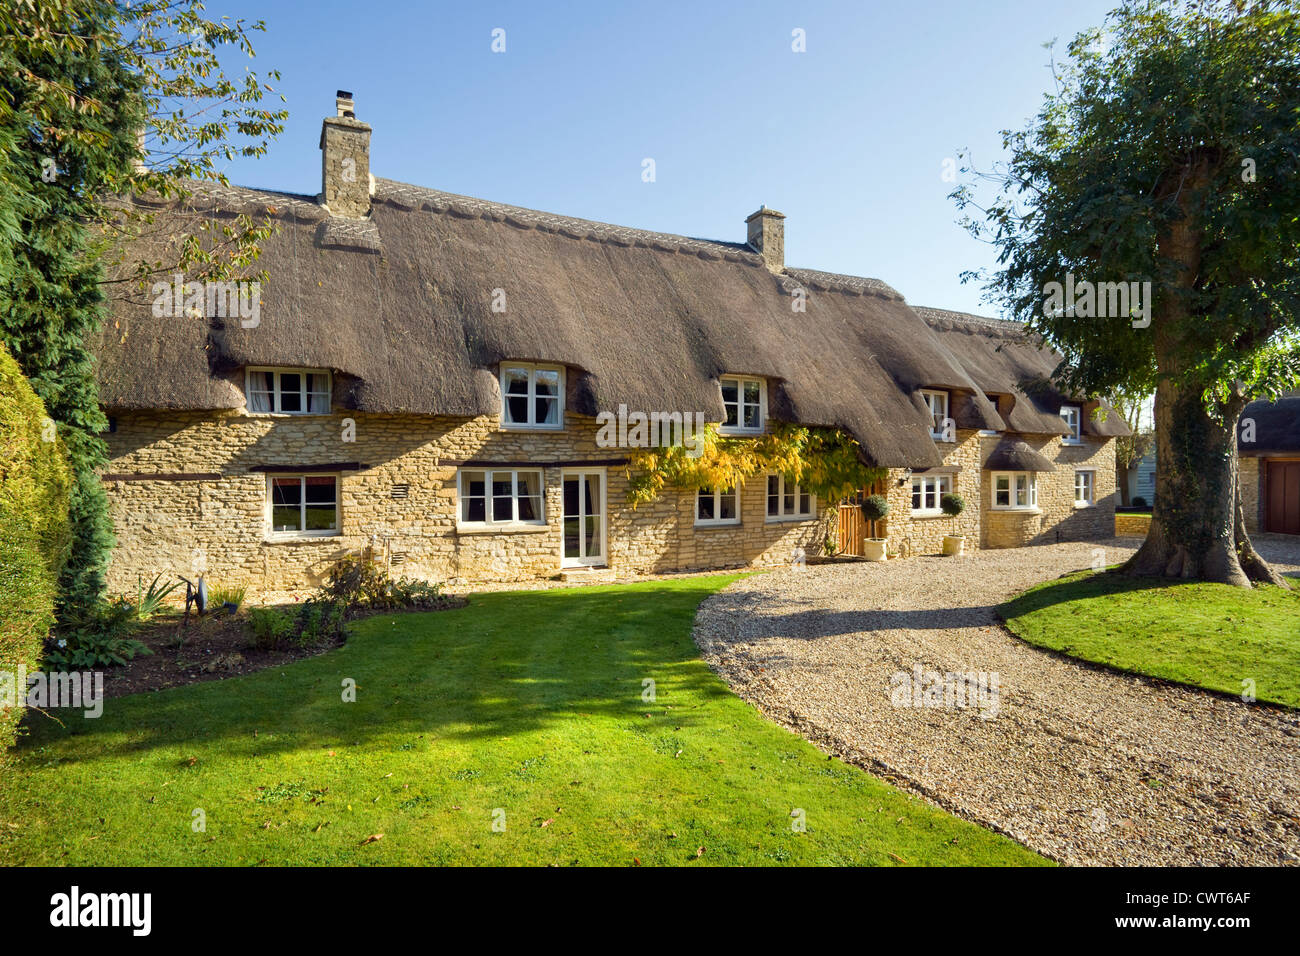 An Idyllic Thatched Cottage At Bampton On The Edge Of Cotswolds Oxfordshire UK